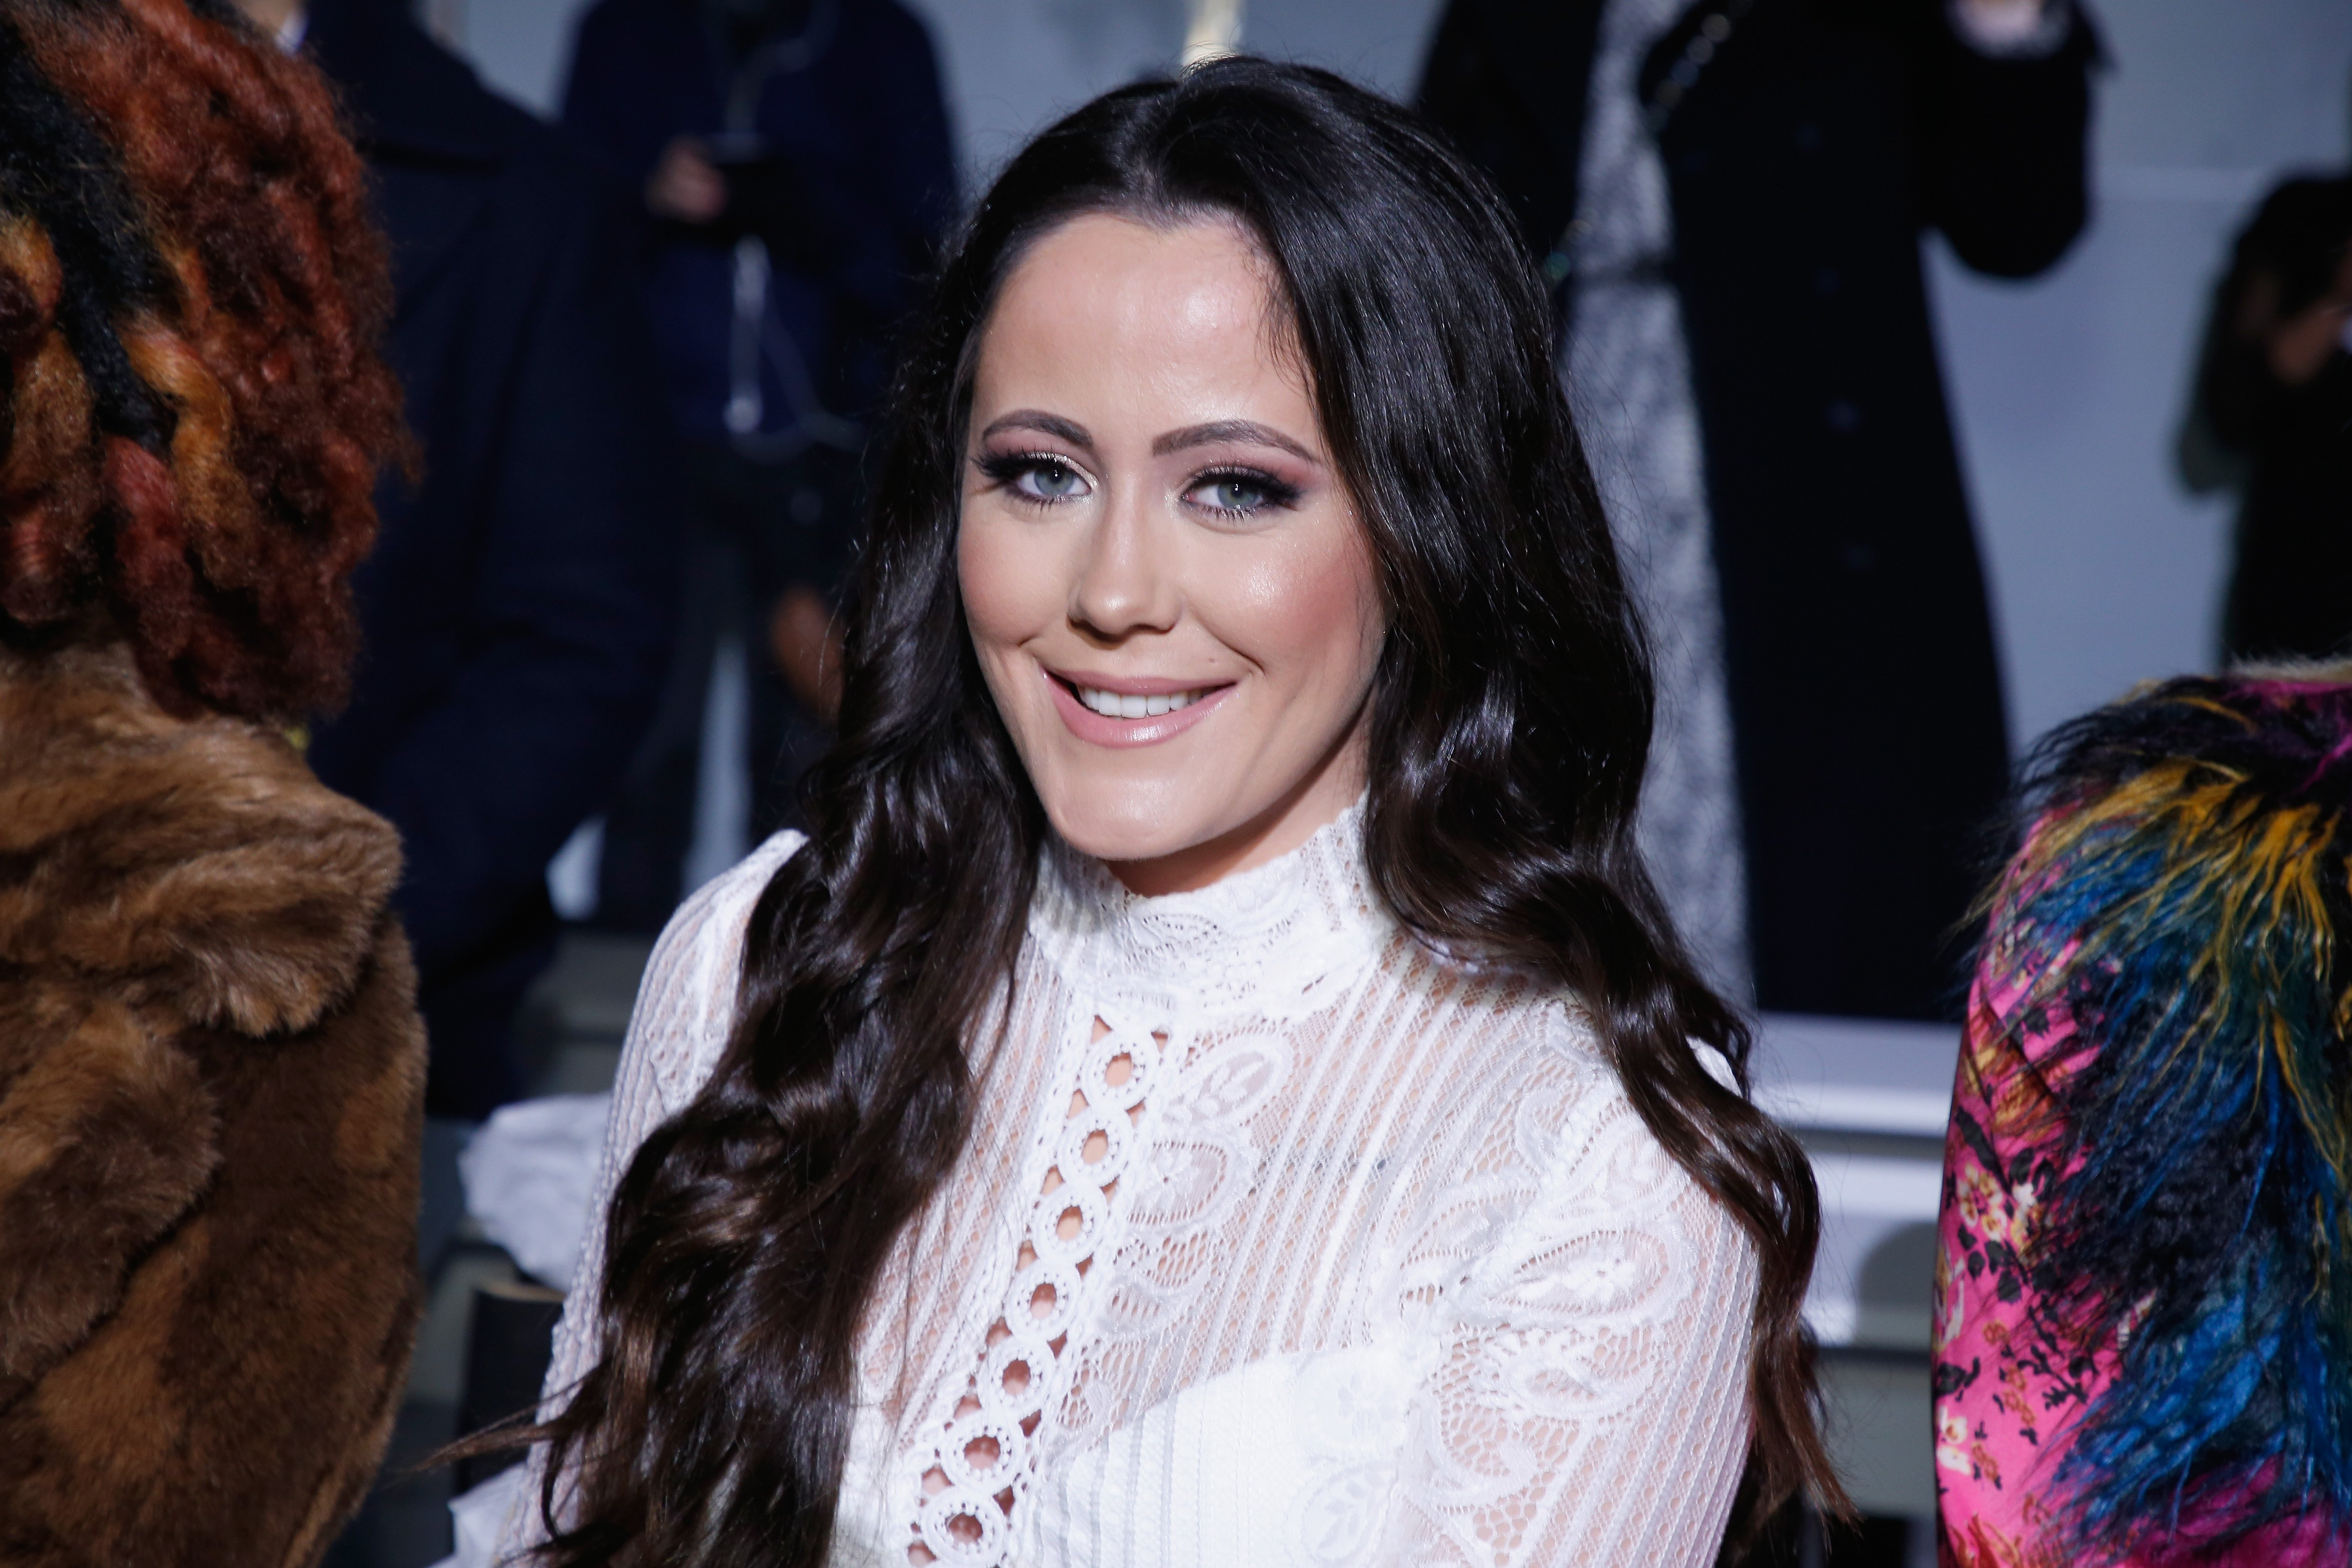 Jenelle Evans attends the Indonesian Diversity FW19 Collections: The Shows at Industria Studios on February 7, 2019 in New York City | Photo: Getty Images